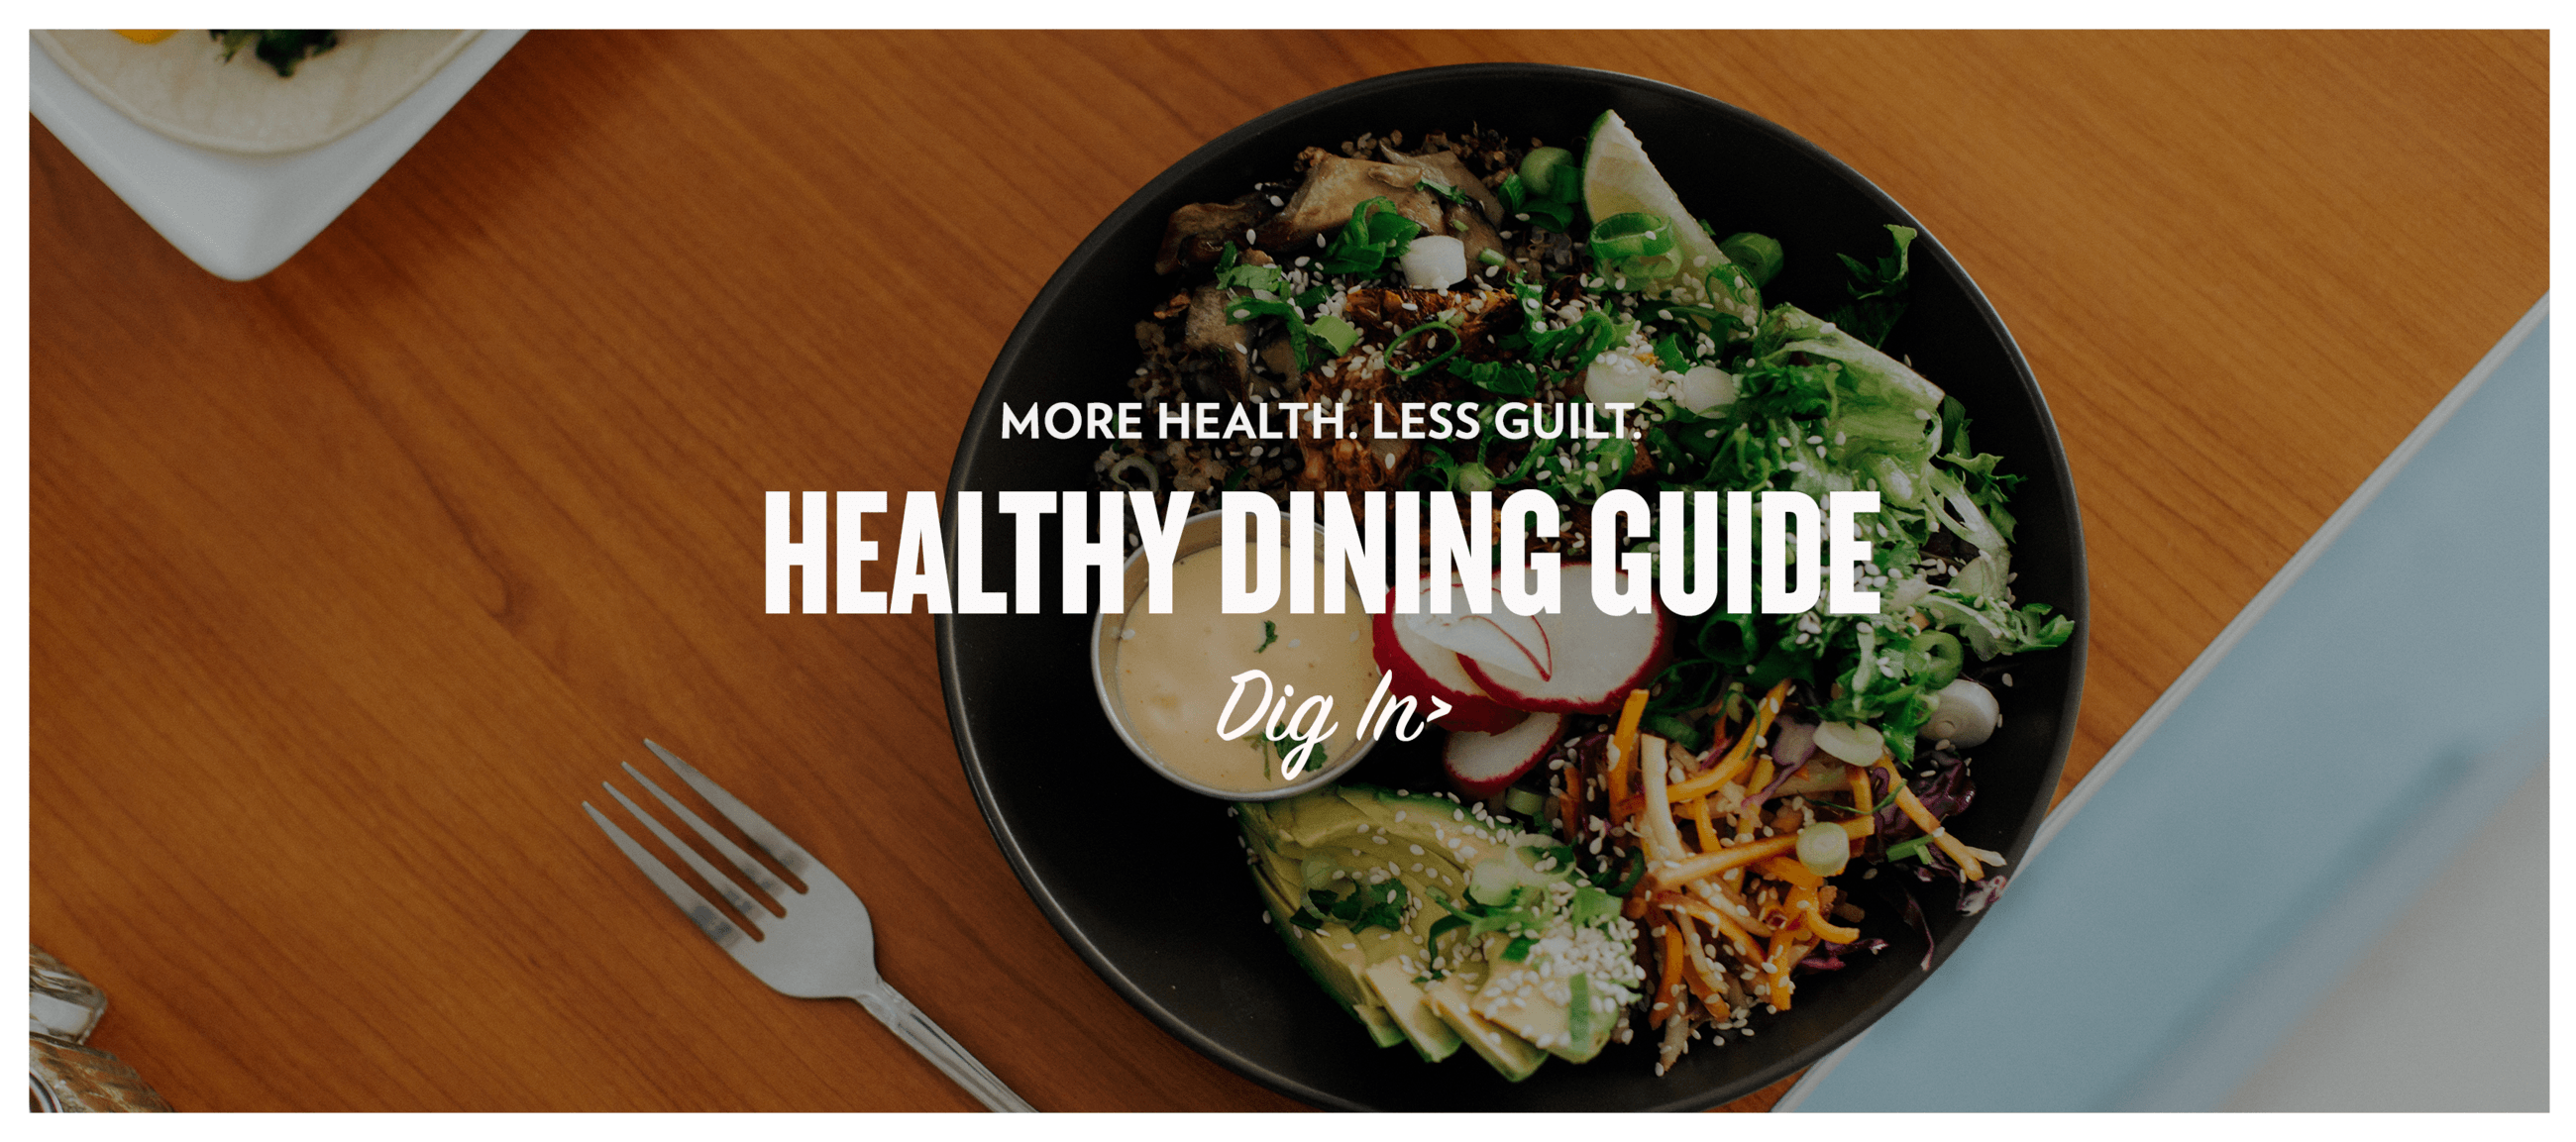 Healthy Dining Guide